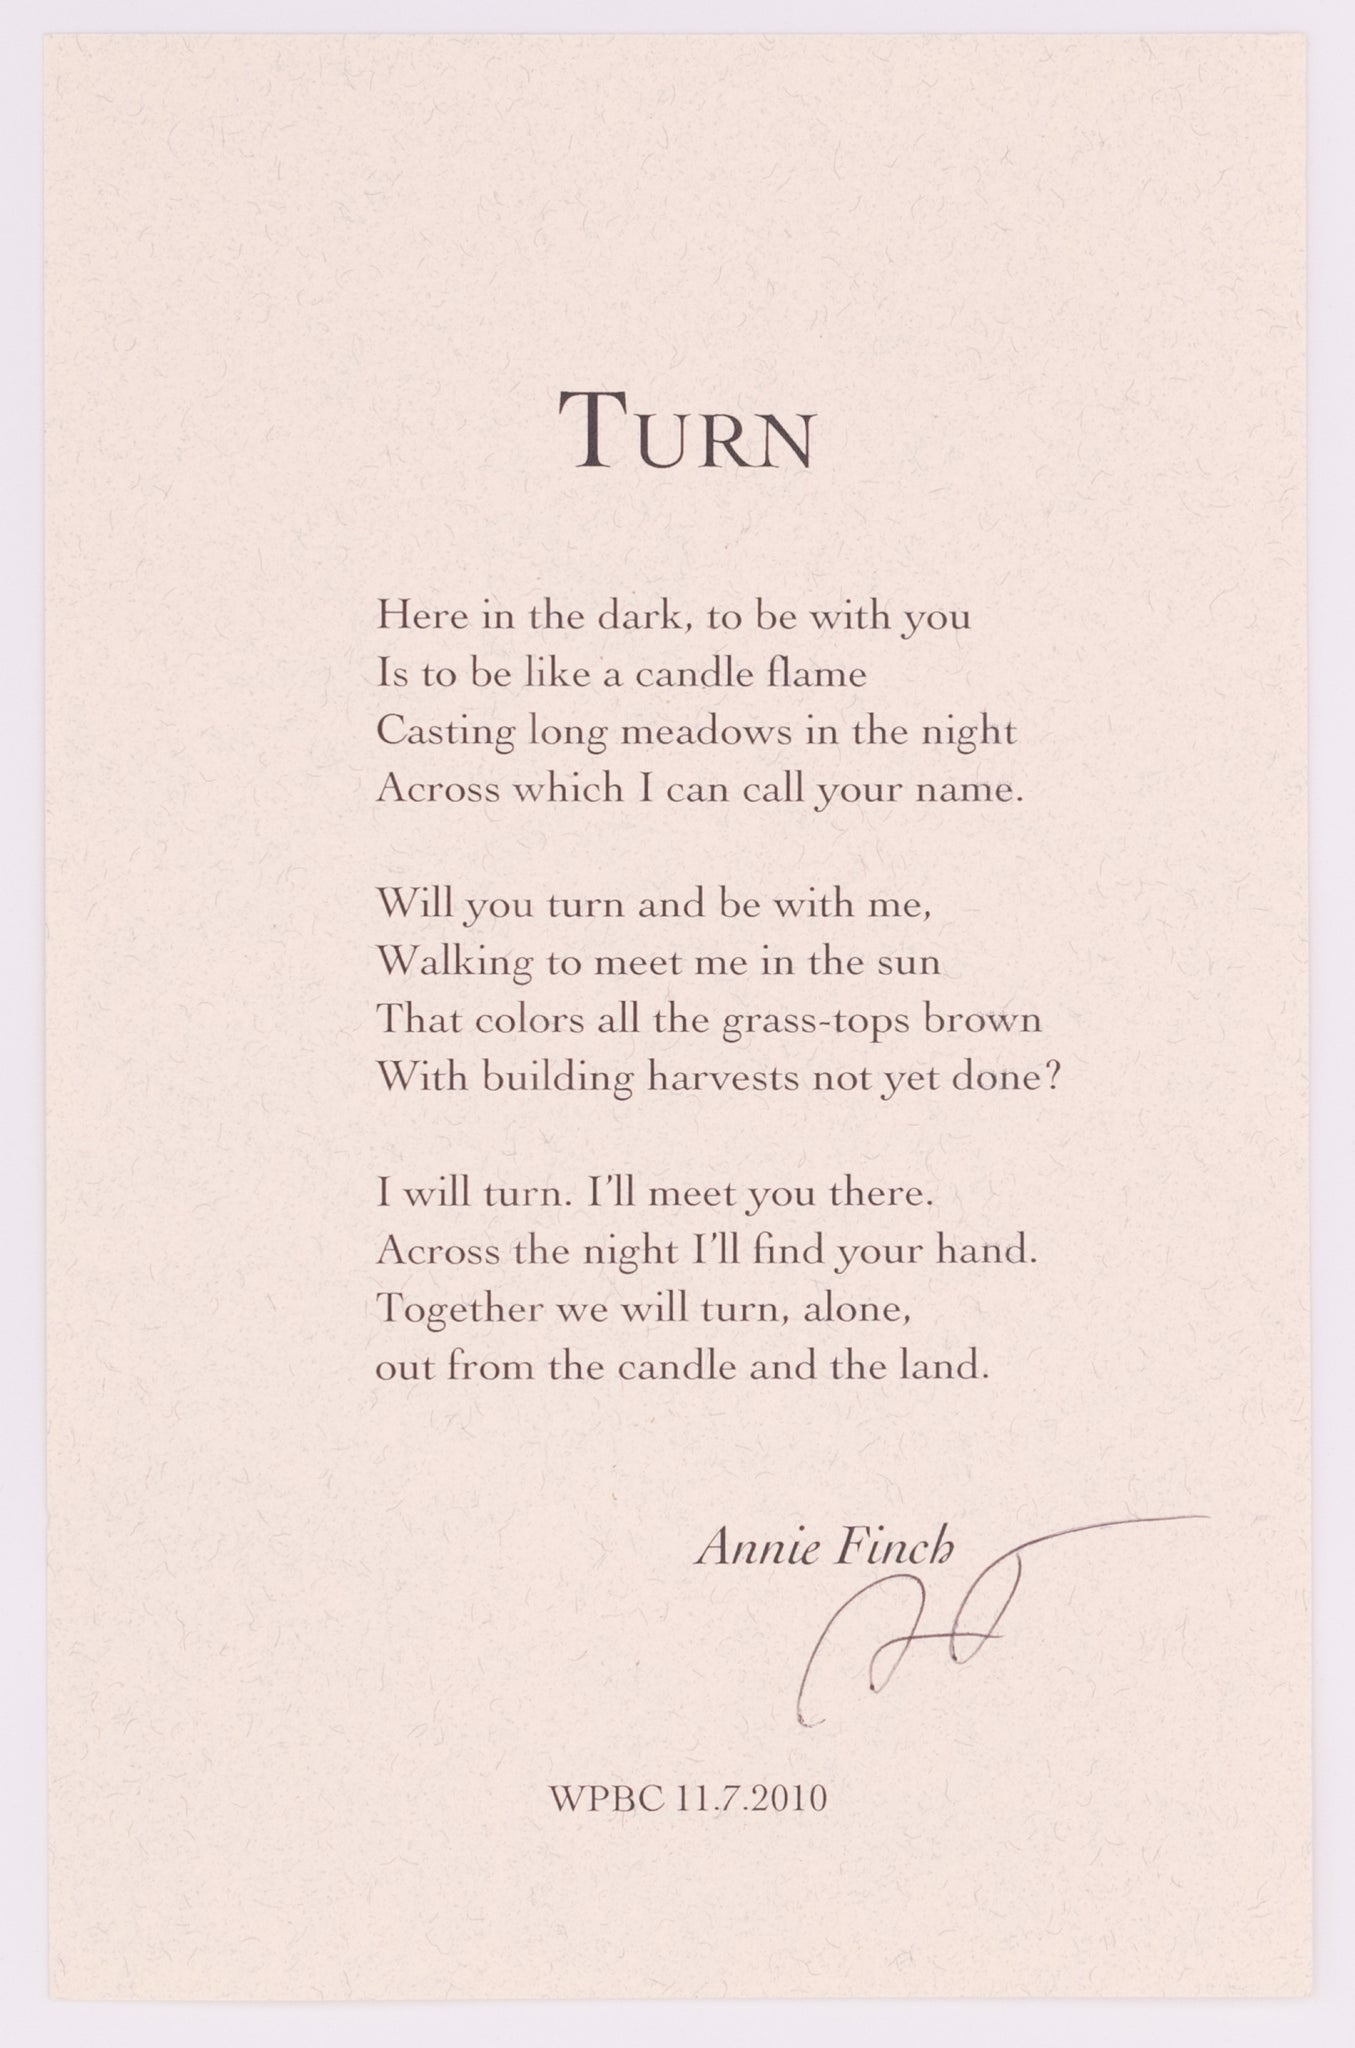 Turn by Annie Finch